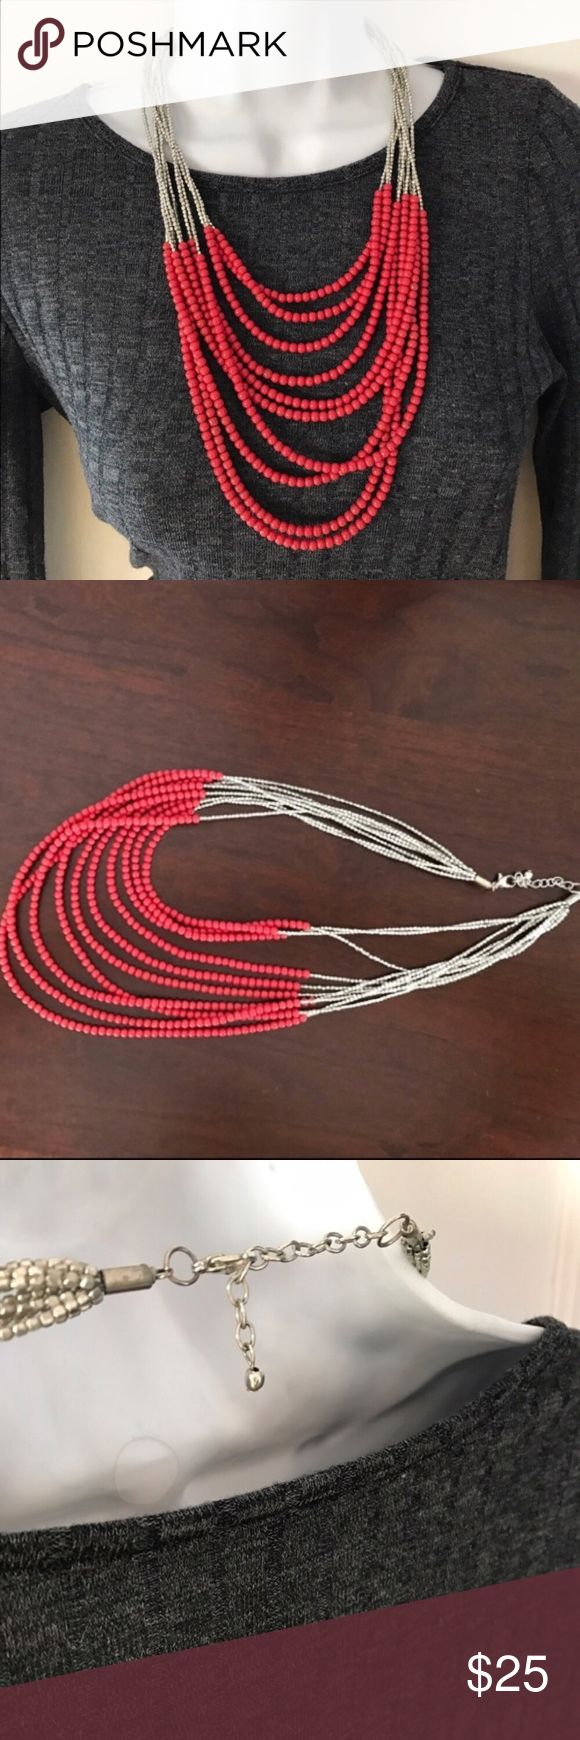 Cost Plus Multi-Strand Red Beaded Necklace 10 strands of red and silver beads make this layered beauty a showstopper. The necklace hangs about 10 inches from the first tier but the clasp is adjustable. Cost Plus World Market Jewelry Necklaces